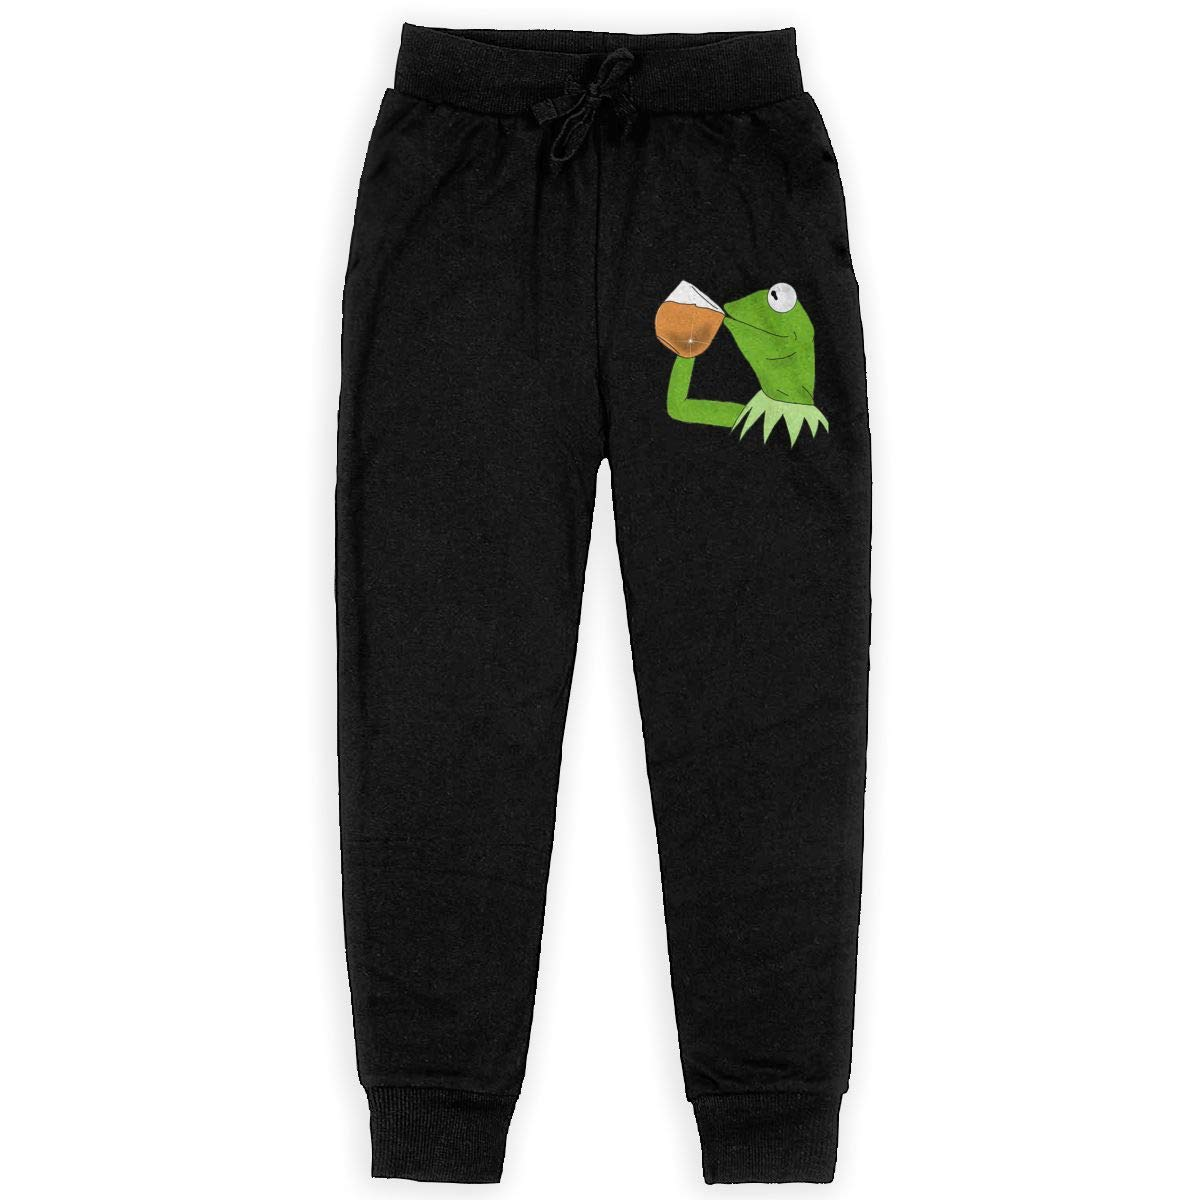 Kermit The Frog Sipping Tea Youth Classic Sweatpants Pull-on Jogger Training Pants